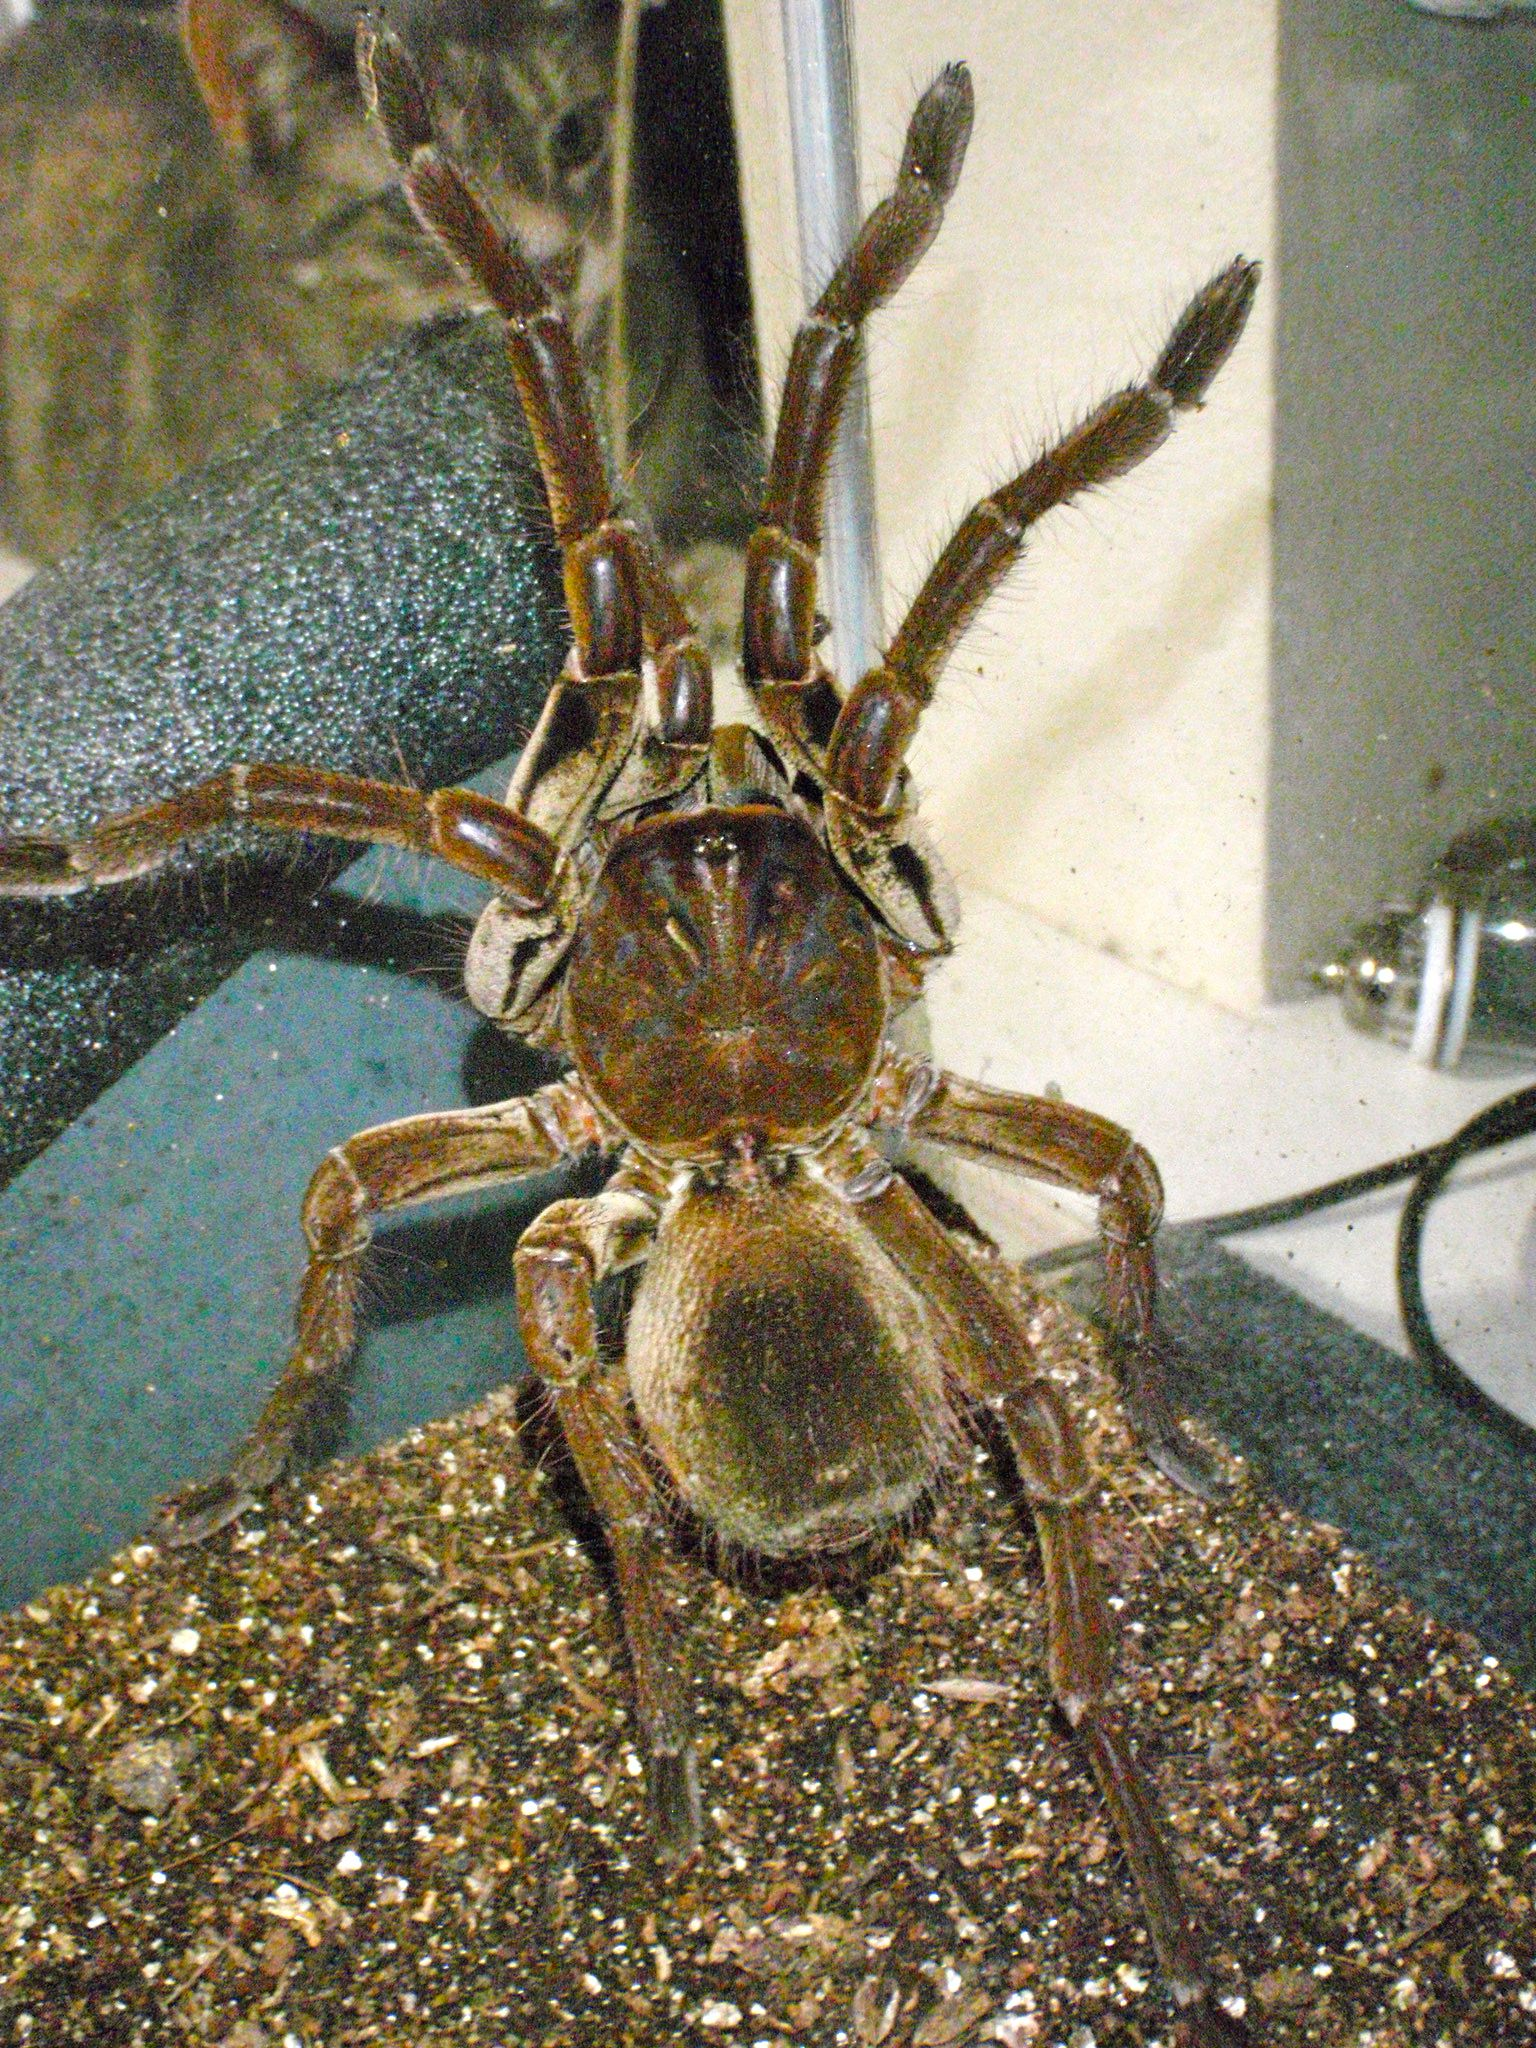 The Goliath Birdeater Theraphosa Blondi Is A Spider